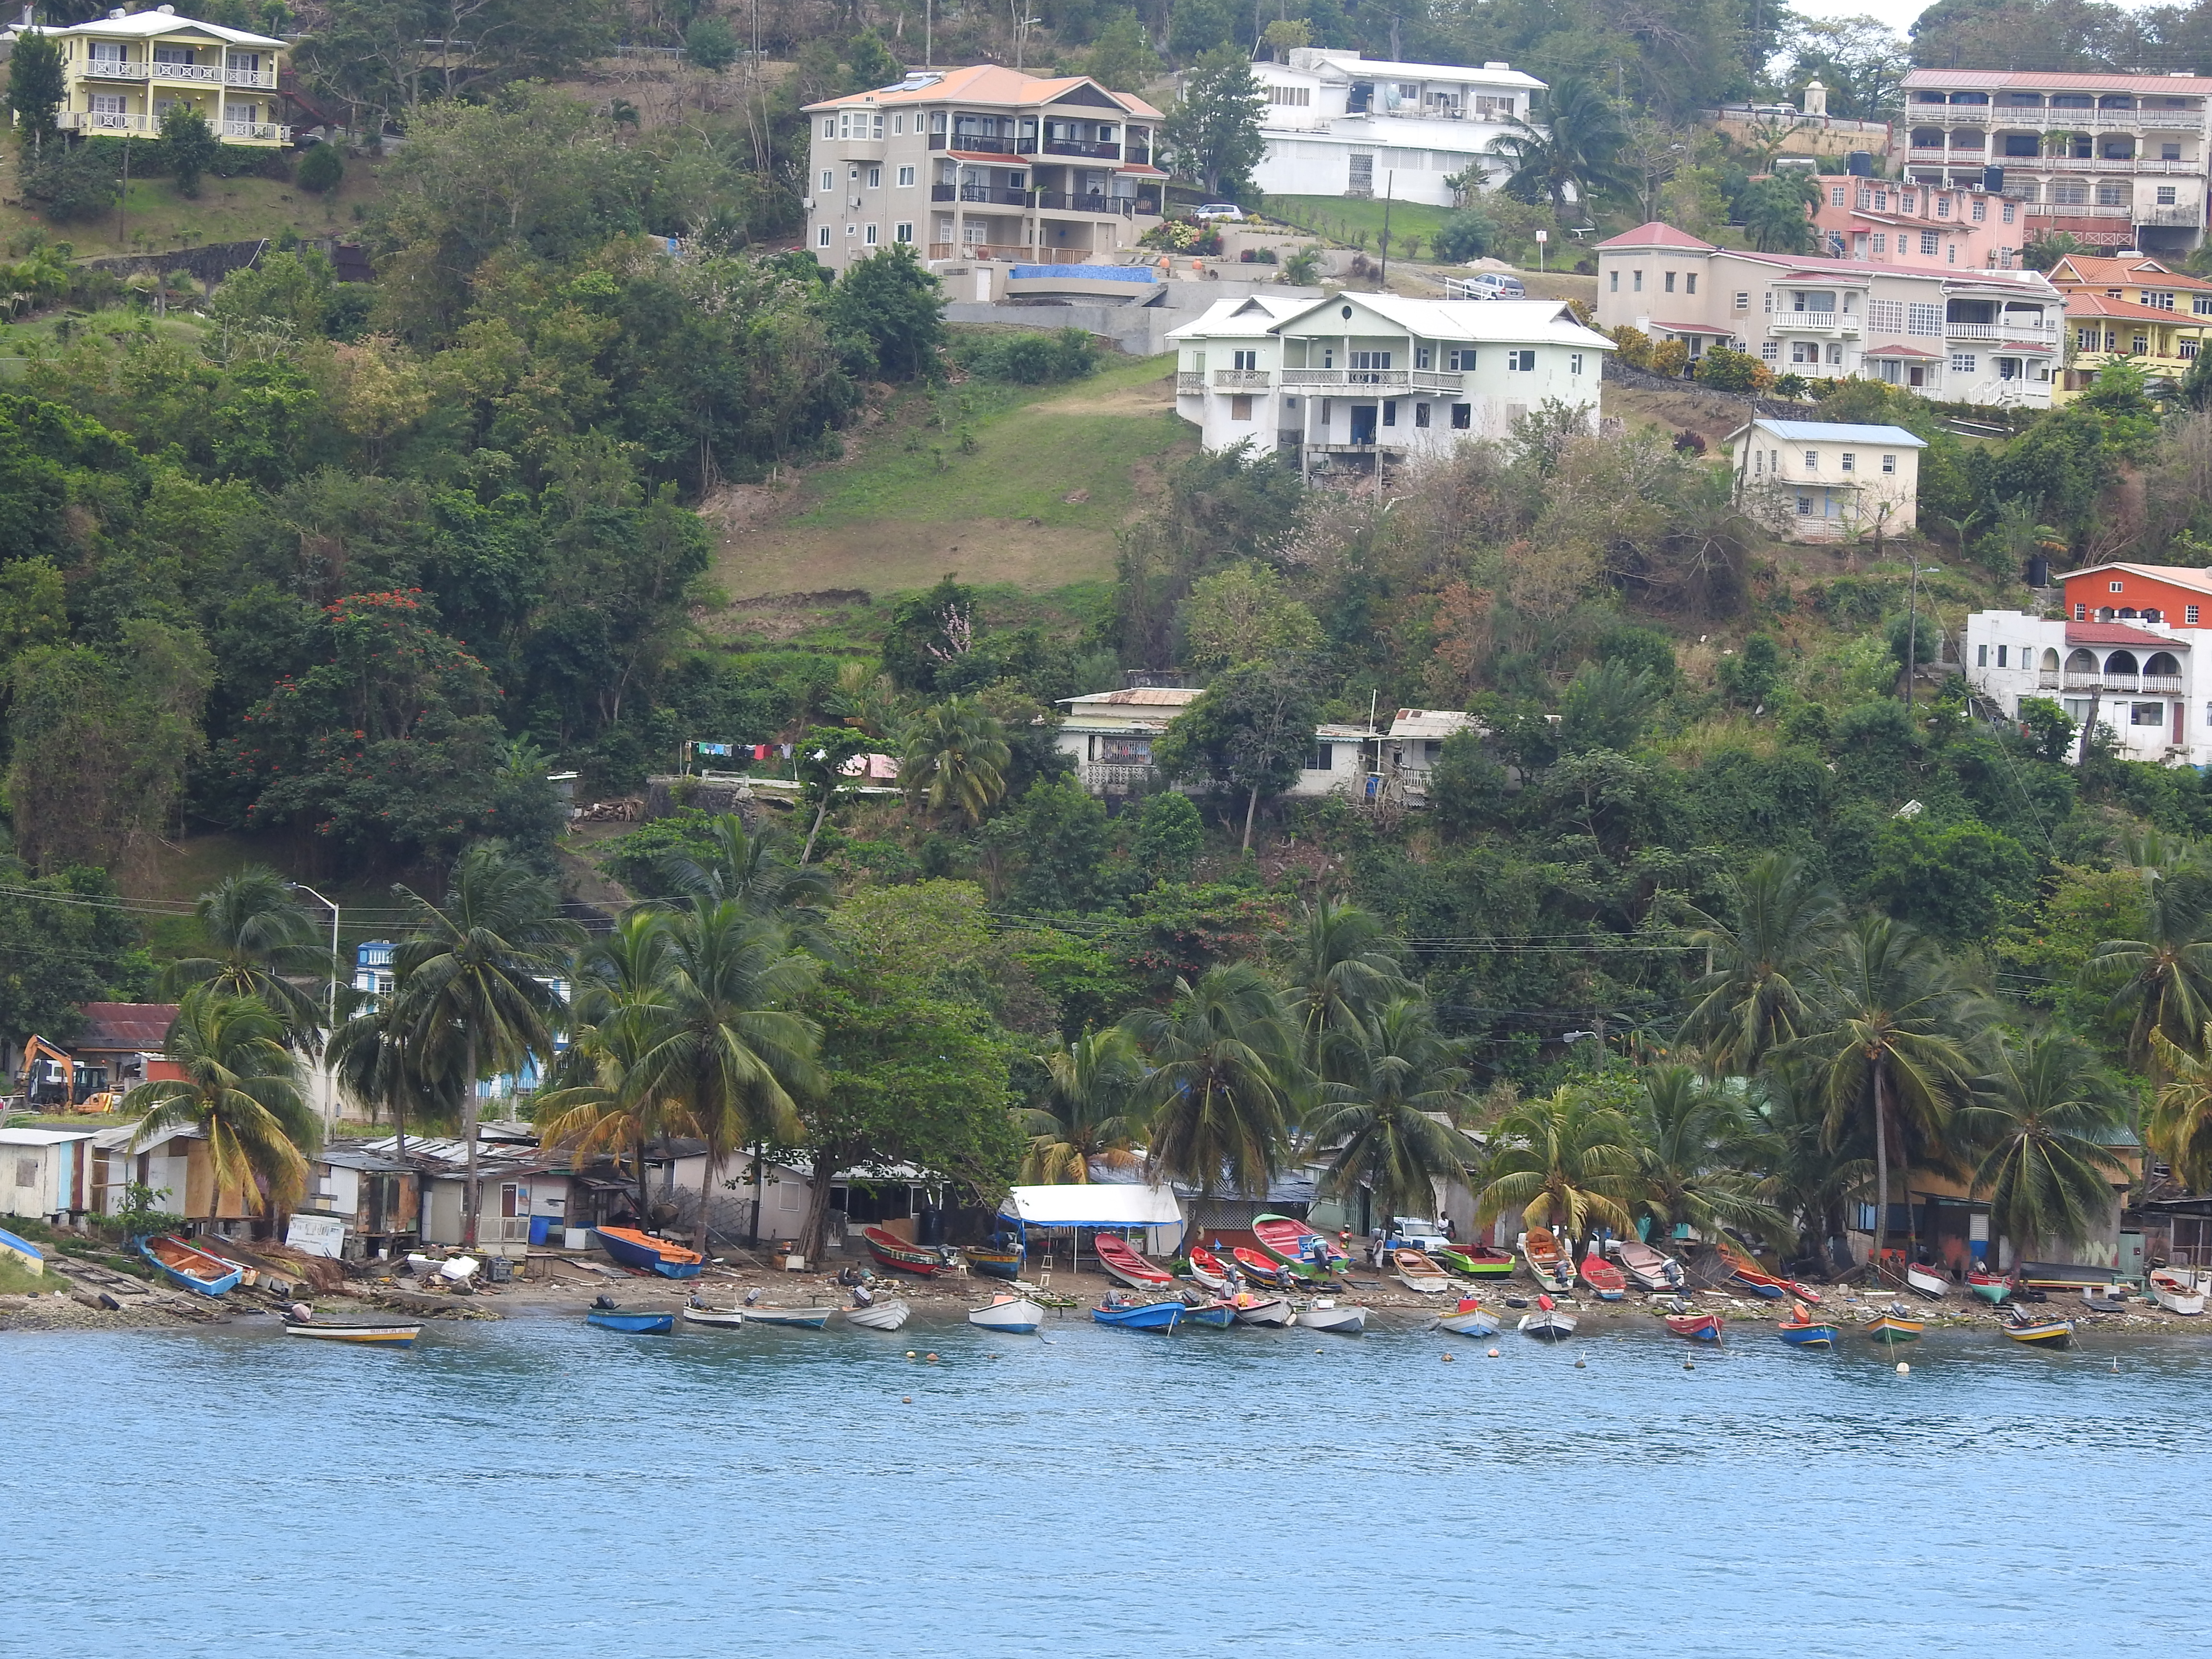 A view of Anse La Raye showing the fishing boats.